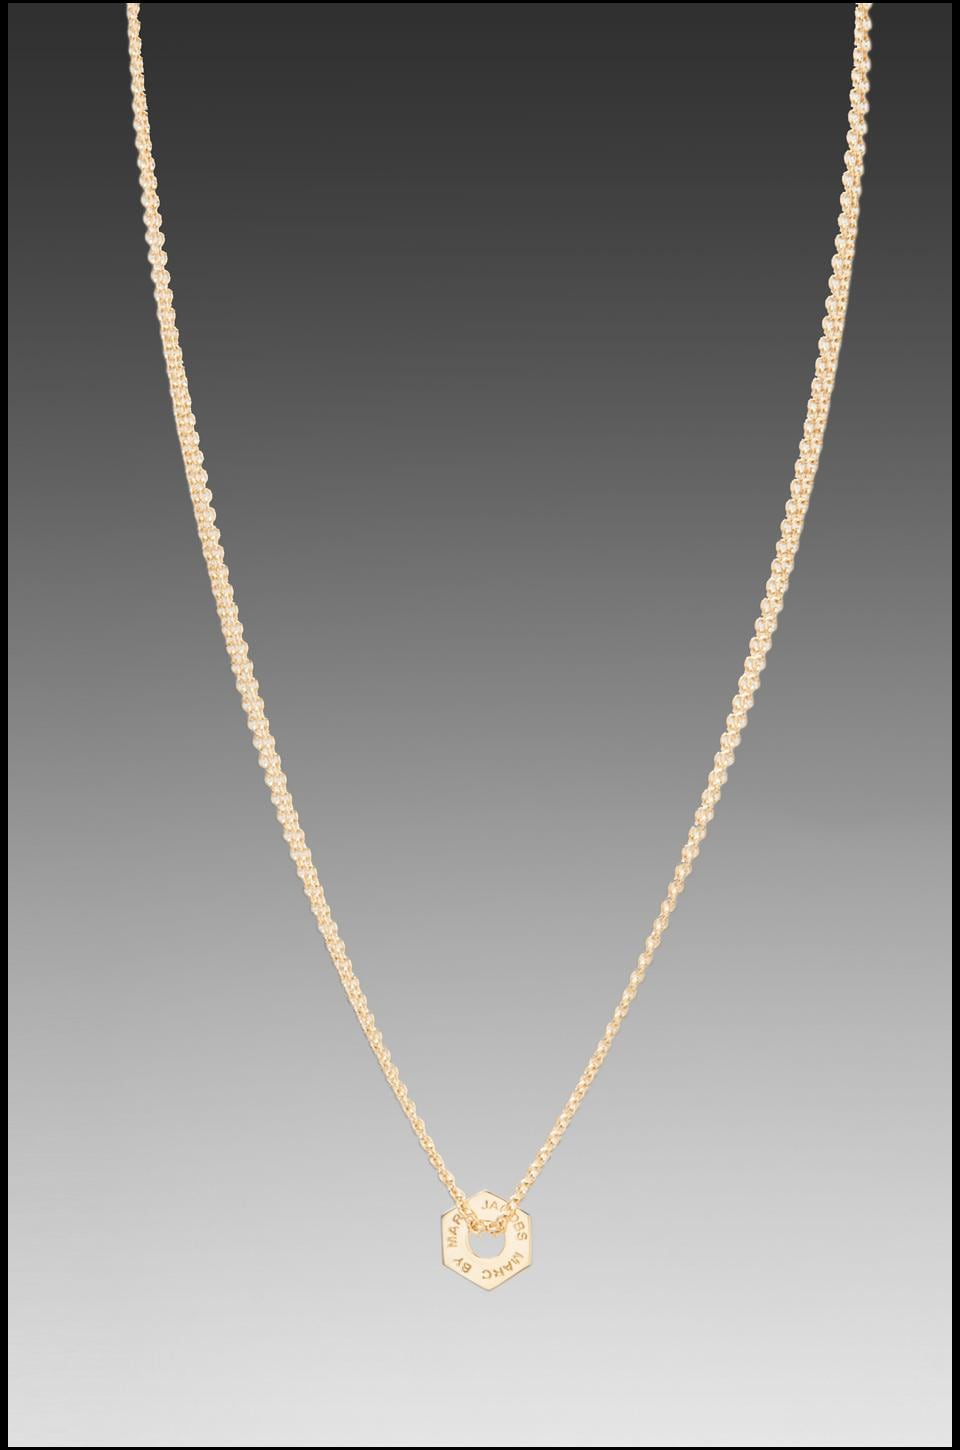 Marc by Marc Jacobs Tiny Bolt Necklace in Oro